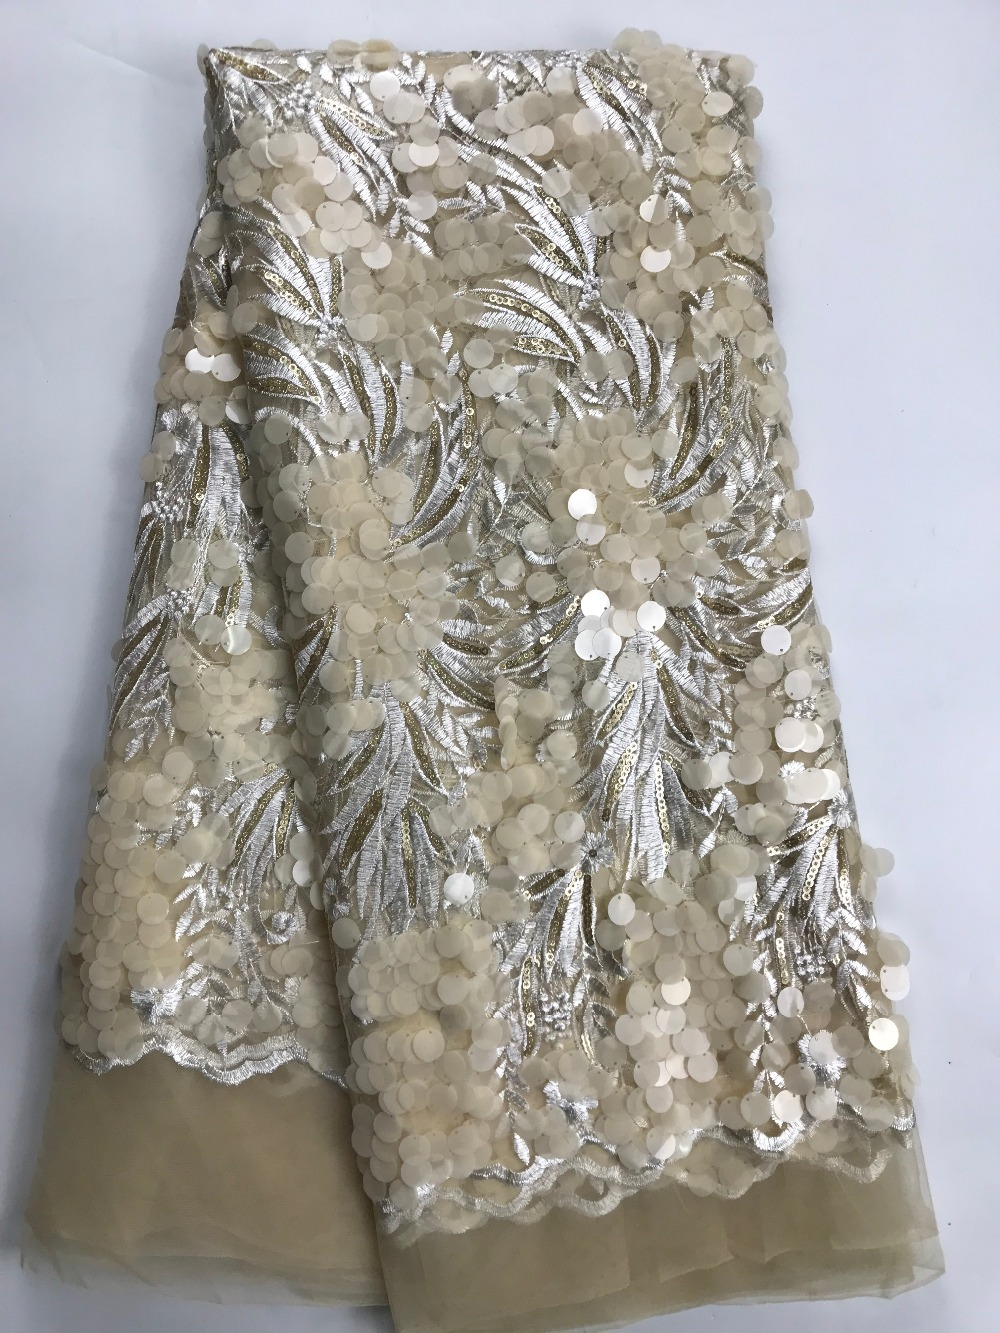 African French Embroidered sequins Lace Fabric High Quality Nigerian Laces Fabric Bridal French Tulle Lace FabricAfrican French Embroidered sequins Lace Fabric High Quality Nigerian Laces Fabric Bridal French Tulle Lace Fabric